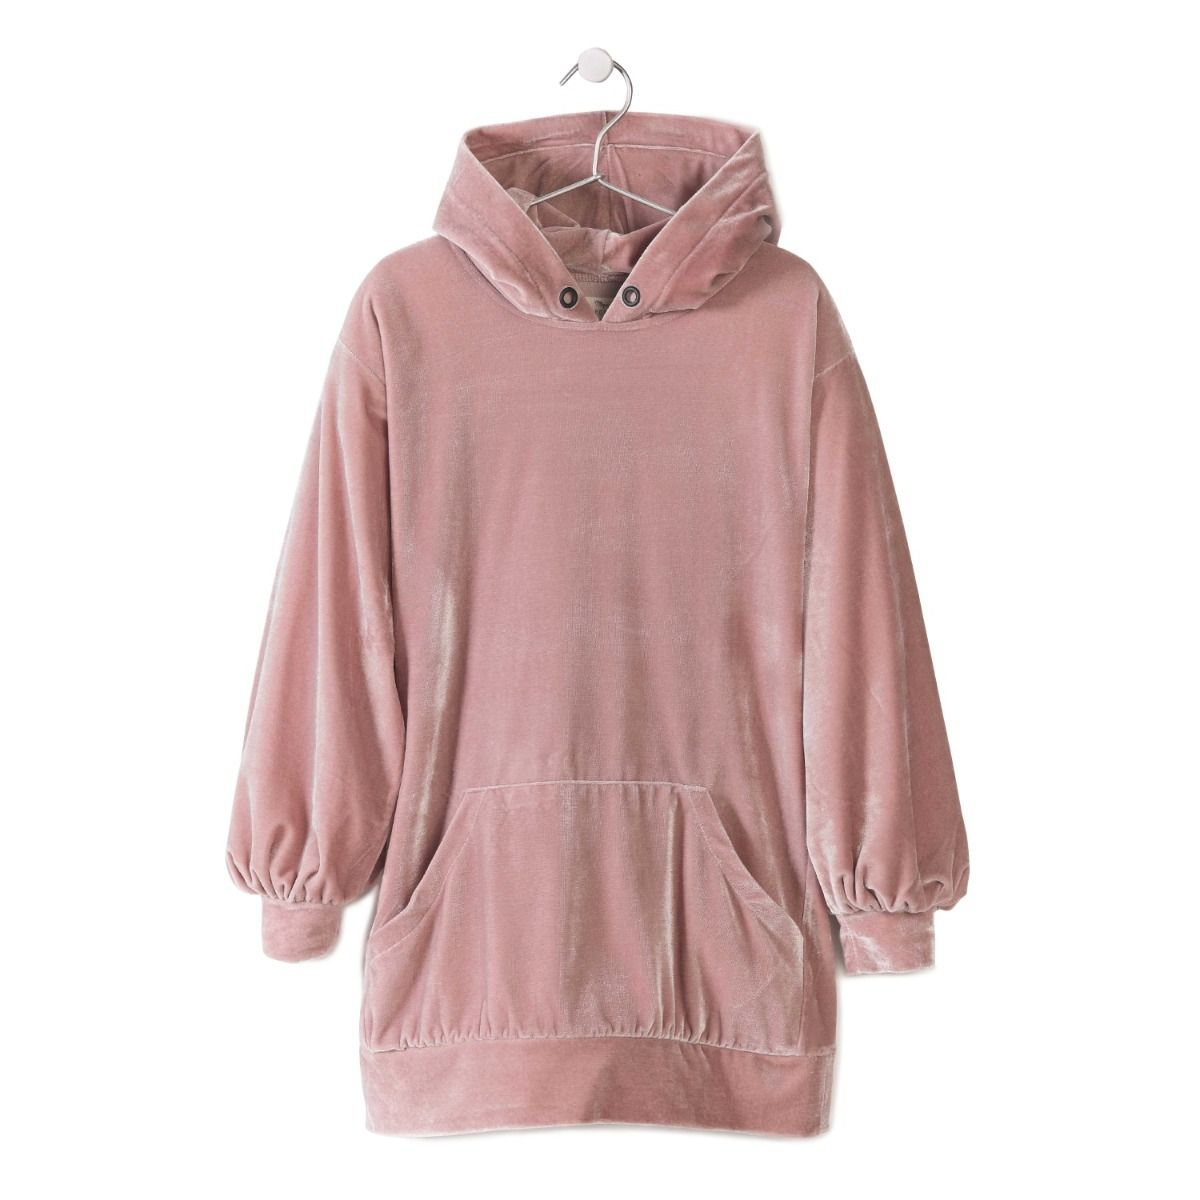 Blush pink velvet hooded dress from Andorine featuring a hood, long sleeves, a kangaroo pocket, a sweater silhouette and a straight hem.